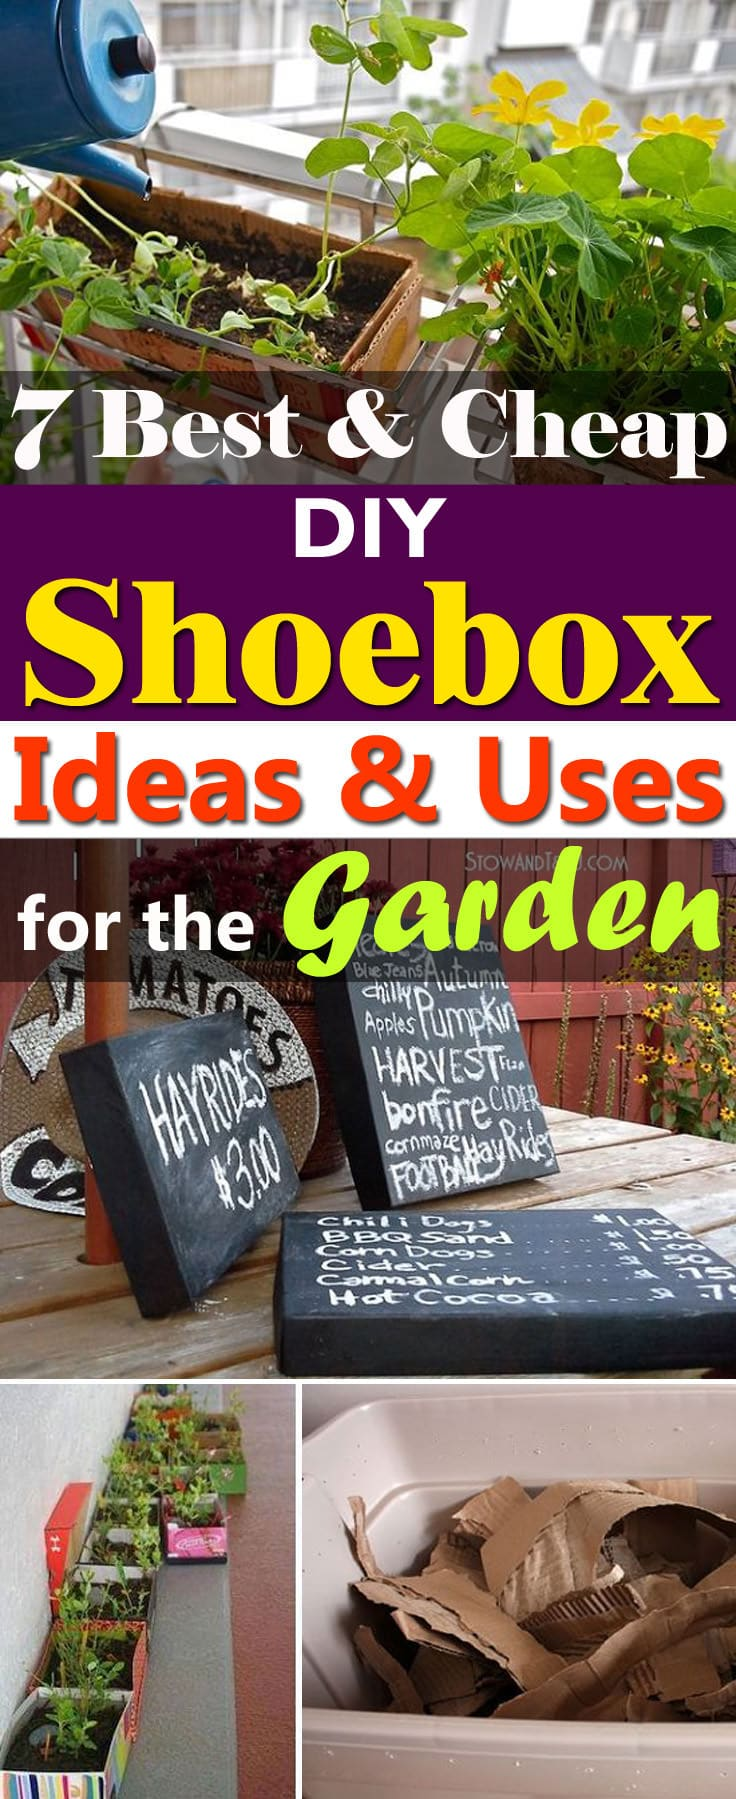 Those shoe boxes you always throw away can be useful. Here're the 7 Best DIY Shoe Box Ideas and Uses for the garden you need to look at!